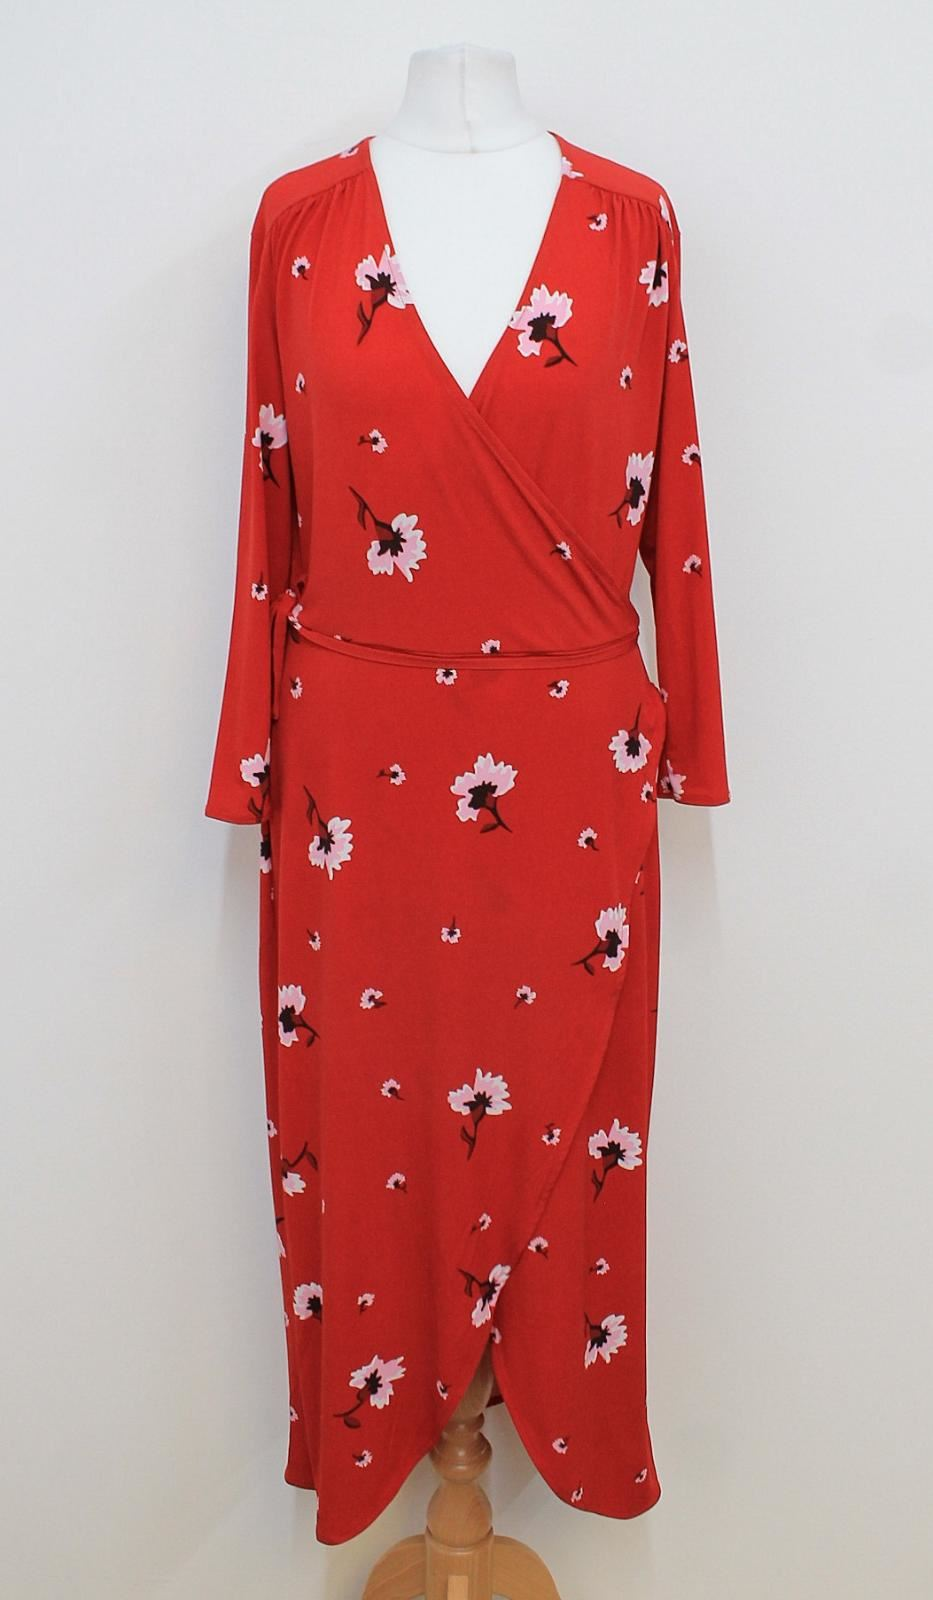 WAREHOUSE-Ladies-Red-Floral-Printed-Long-Sleeved-V-Neck-Wrap-Dress-Size-UK12